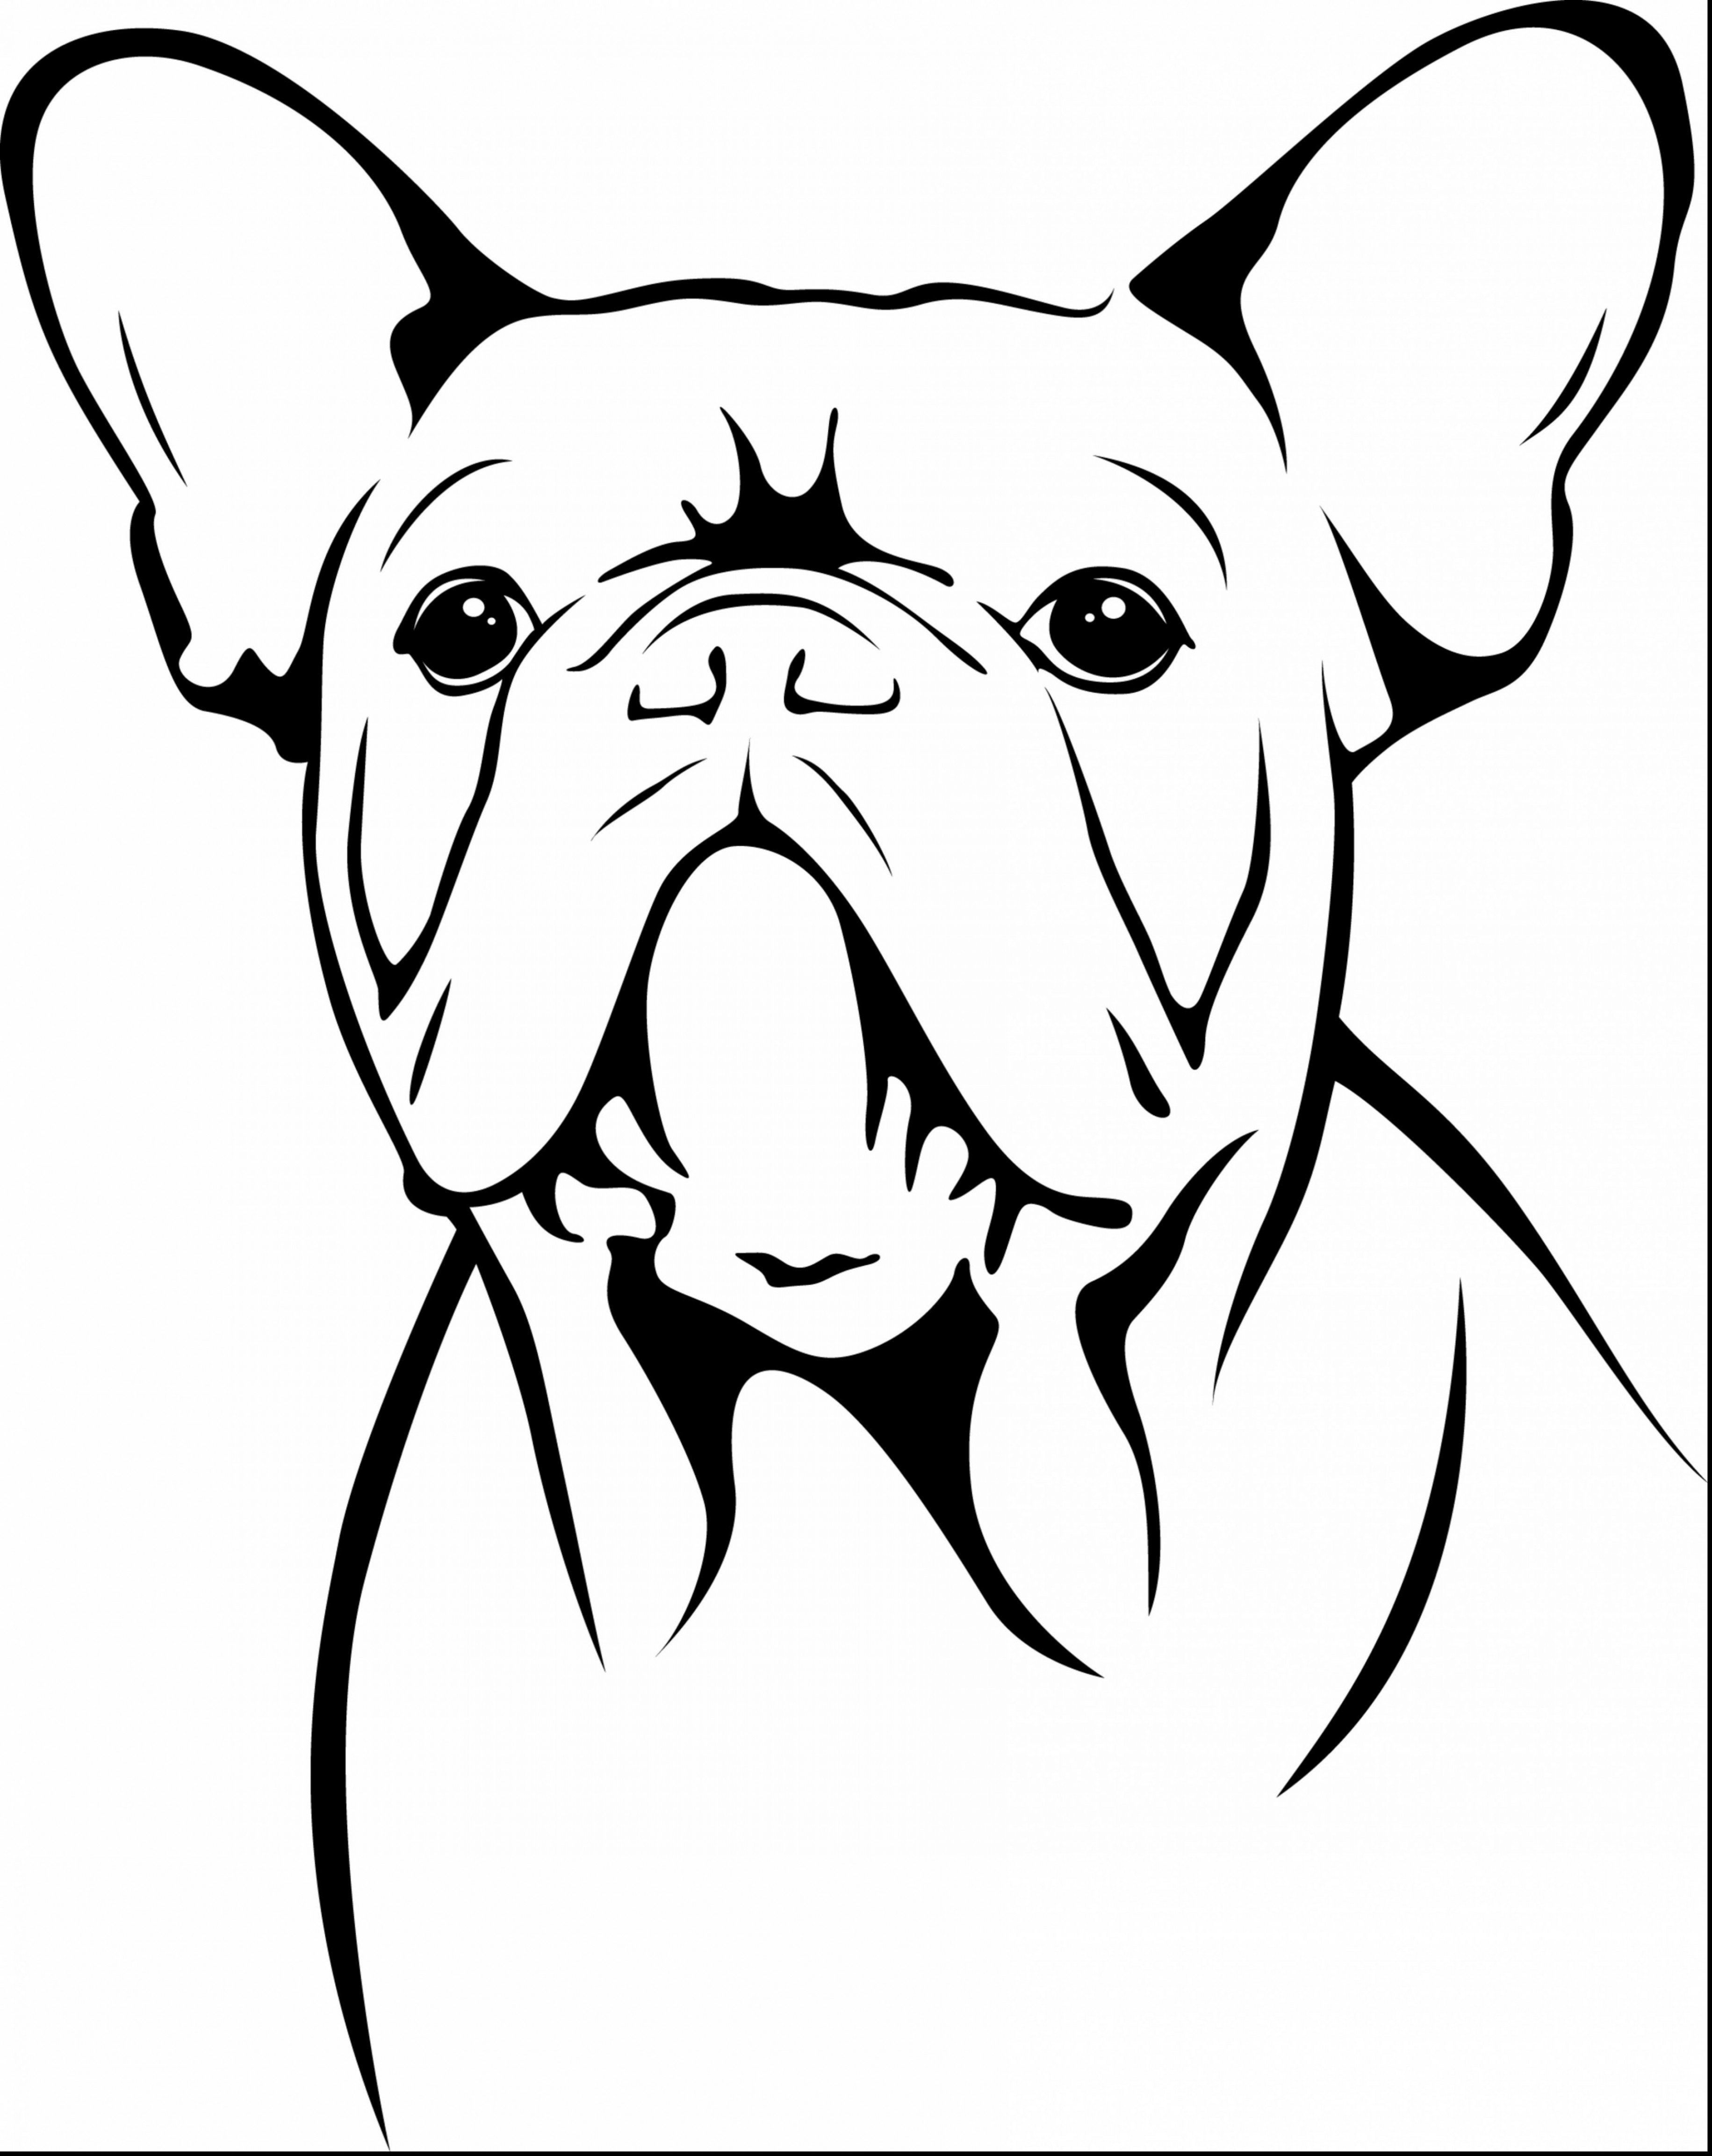 29 Unique Coloring Pictures Of Dogs Dog coloring page